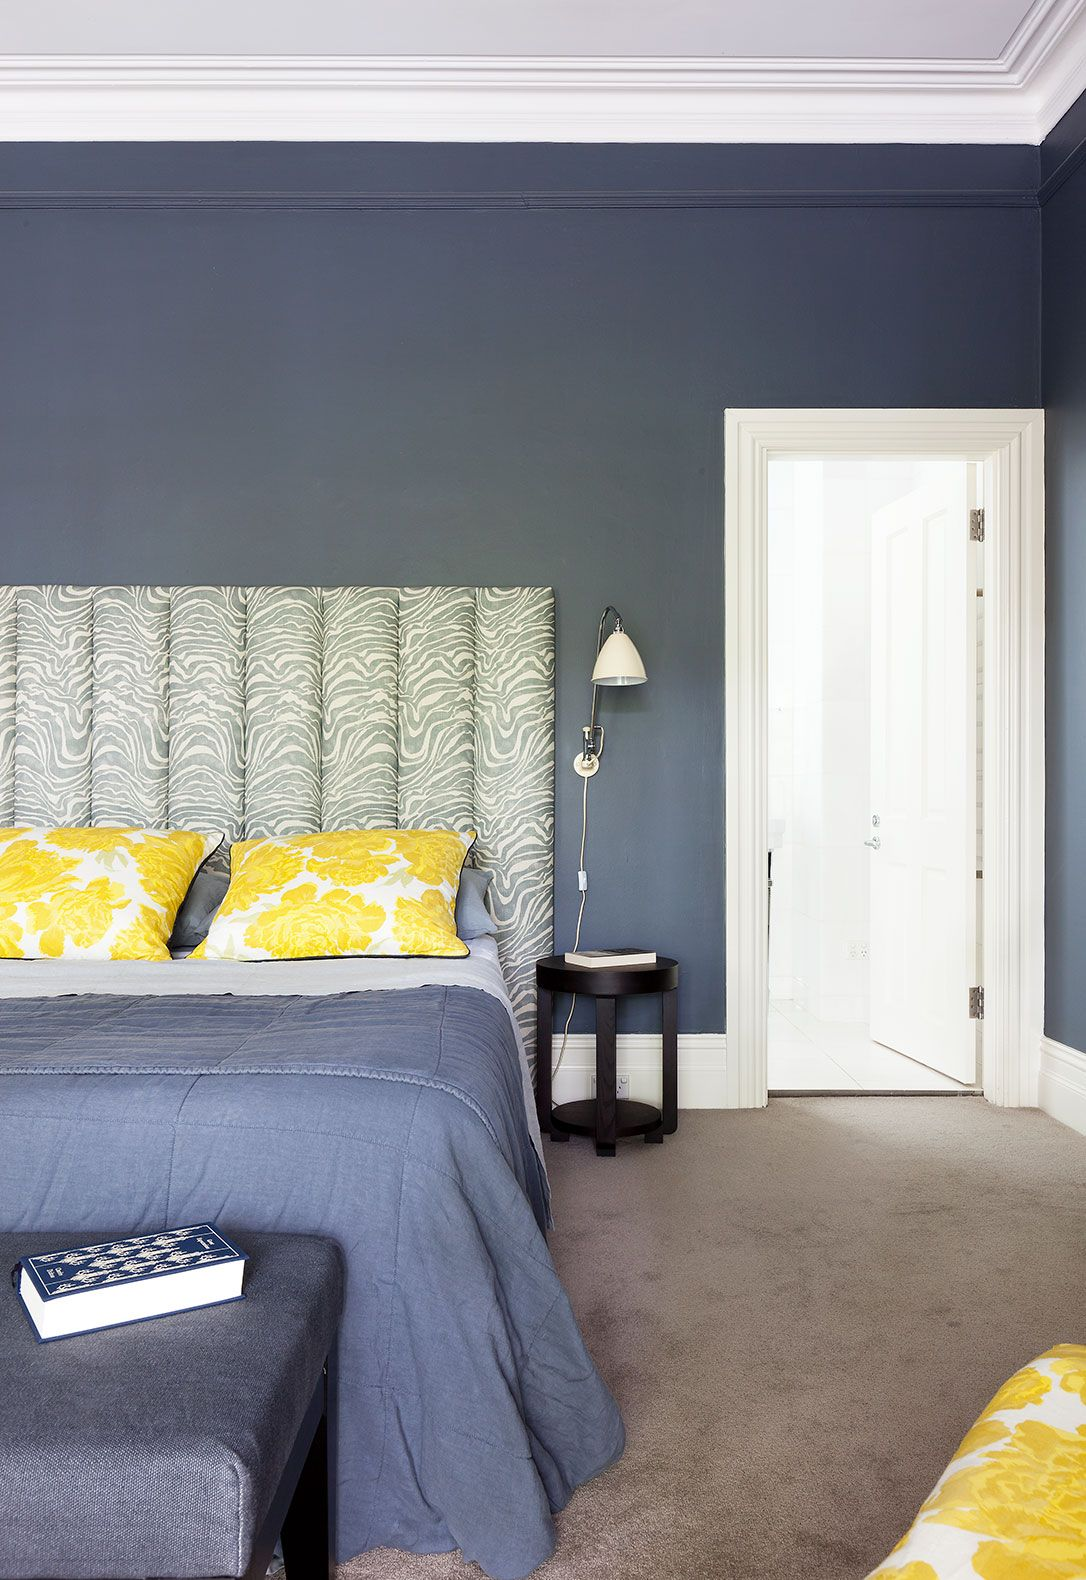 Master bedroom yellow walls  World Best Interior Designer featuring arentpyke ntpyke For more